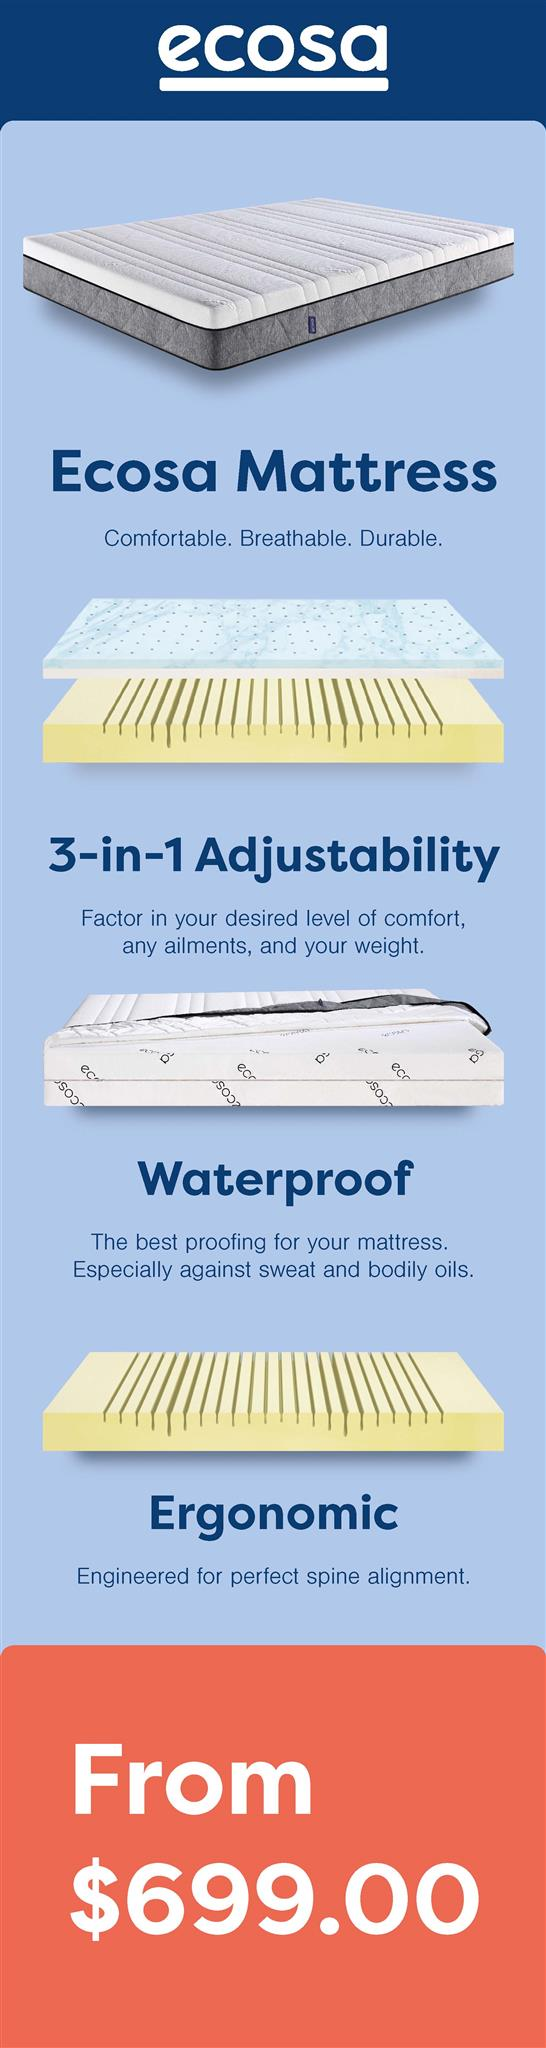 ecosa vs nectar mattress